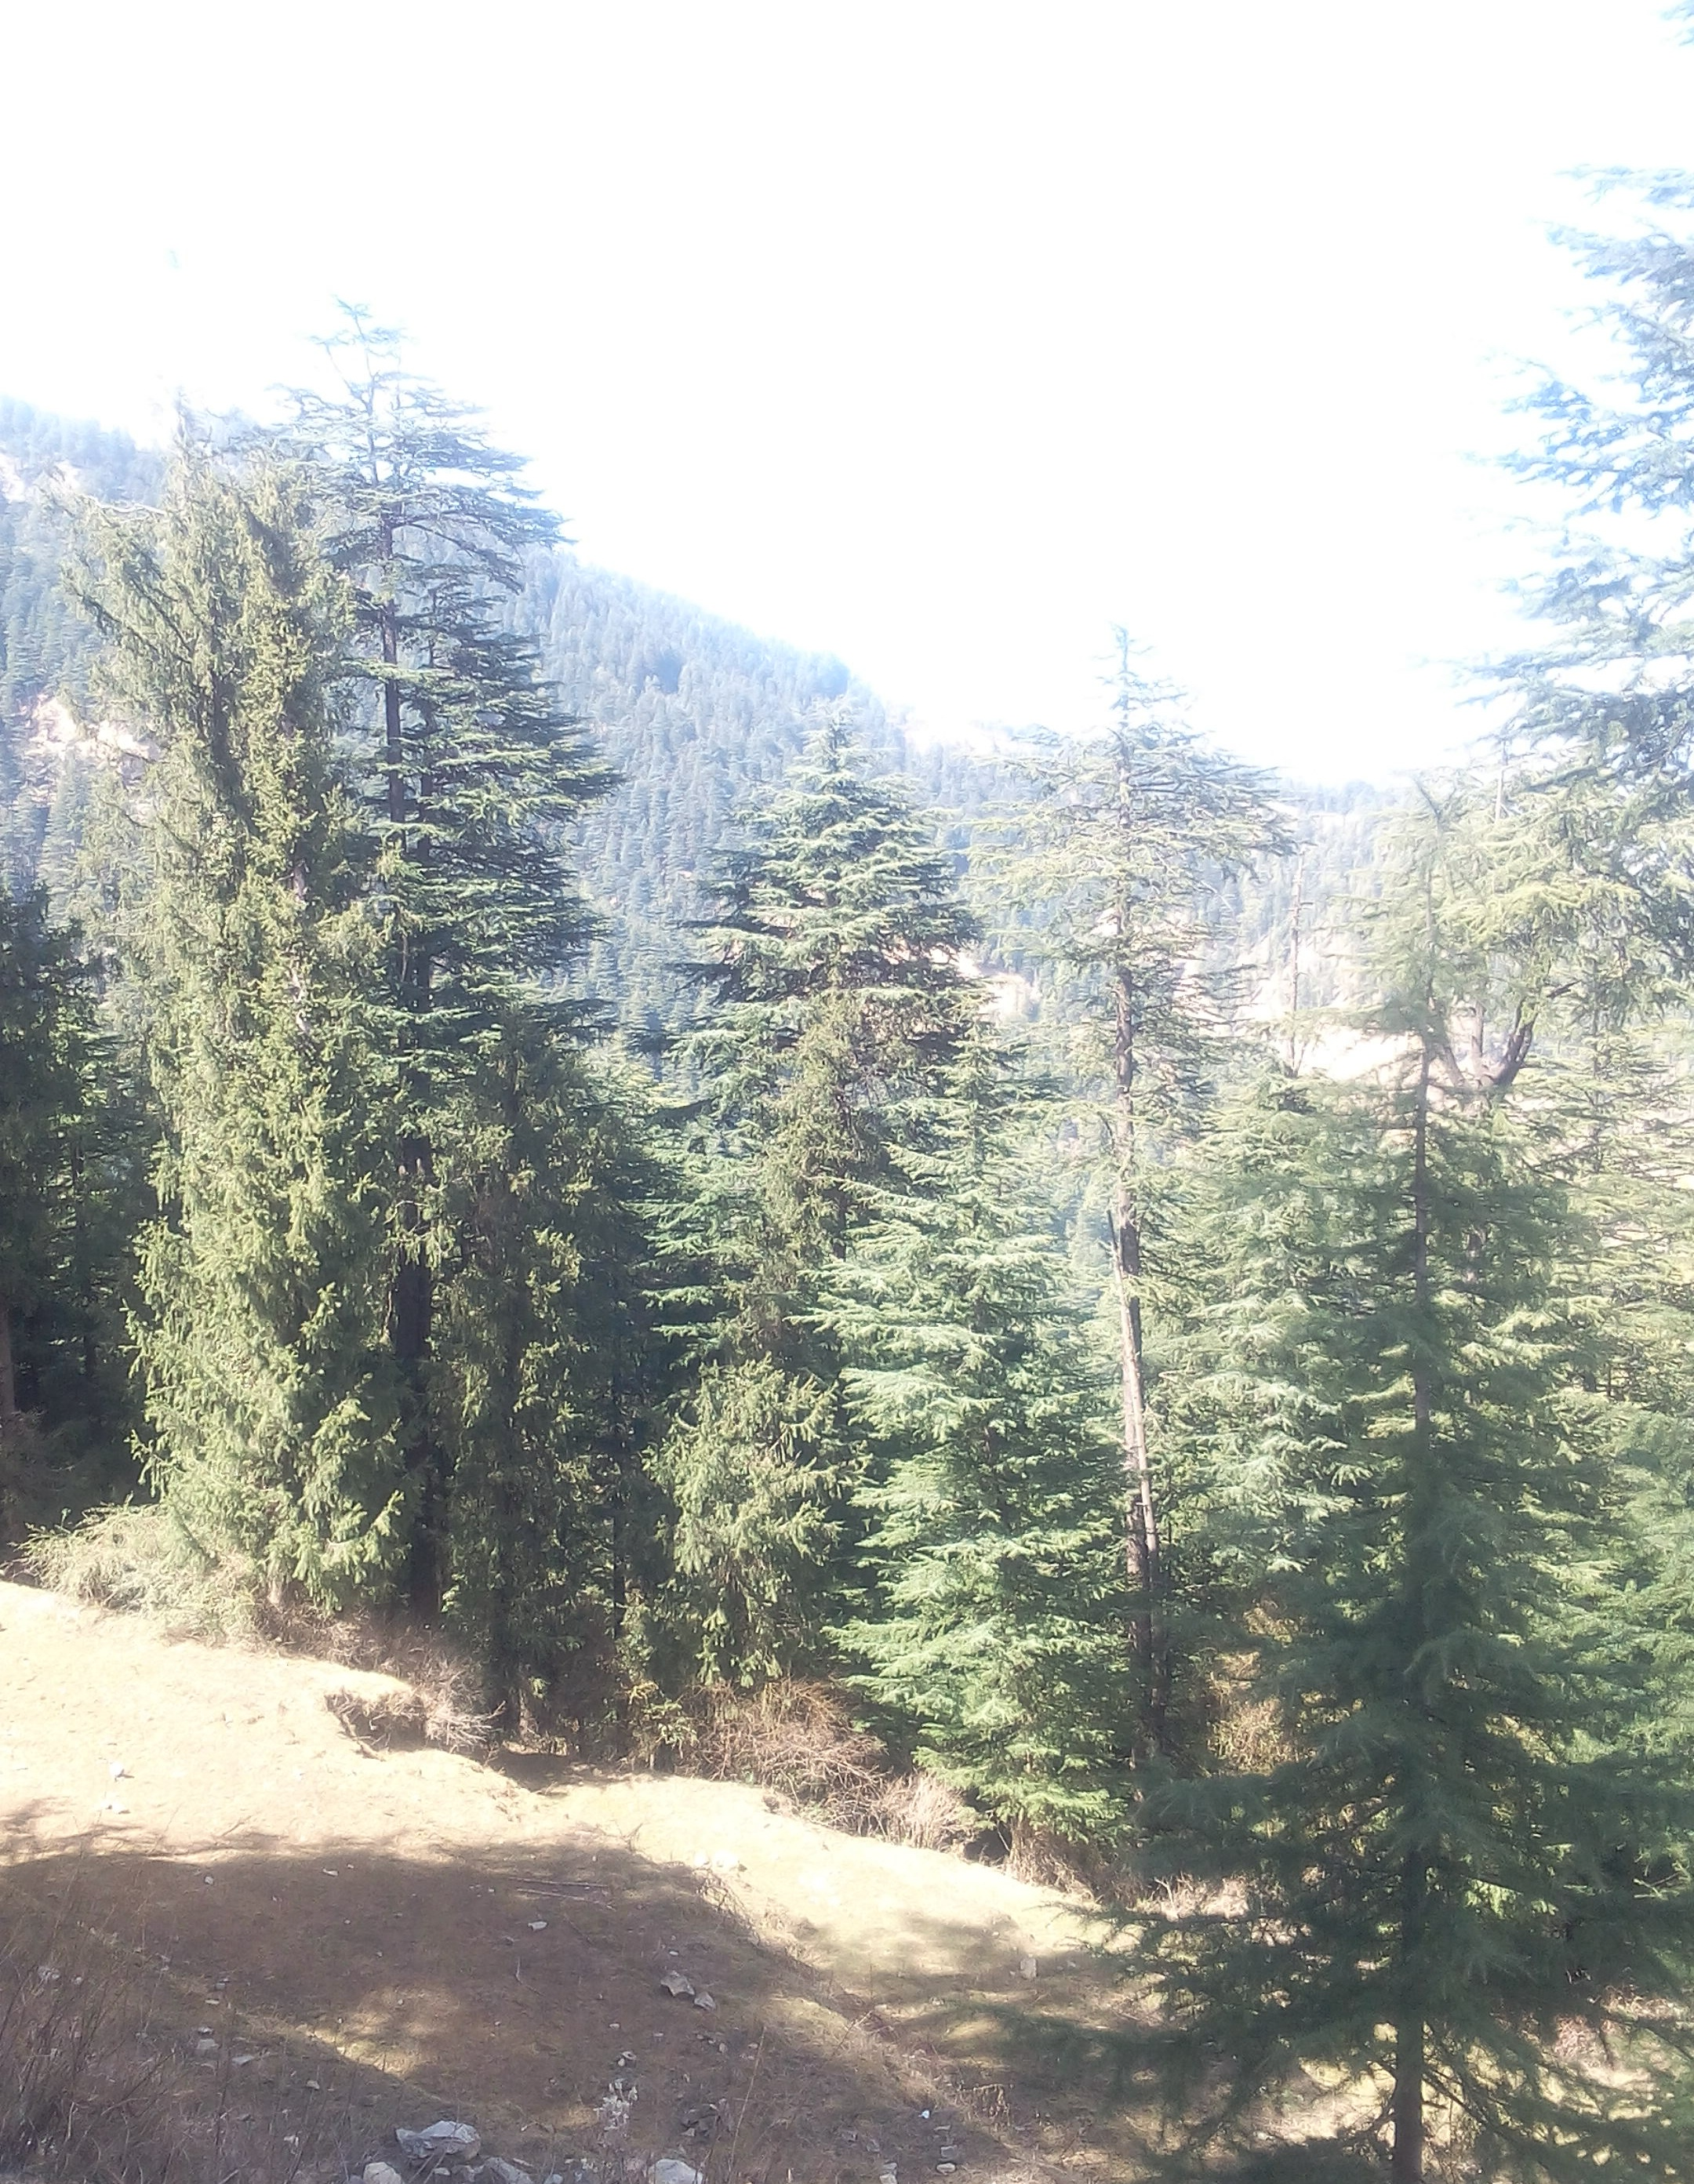 46 Biswa Plot For sale at Near Dak banglow Mashobra Shimla — Drive in — 6 km from Mashobra  — Usable for Cottage and Guest House  —- Price – 1.84 Cr.